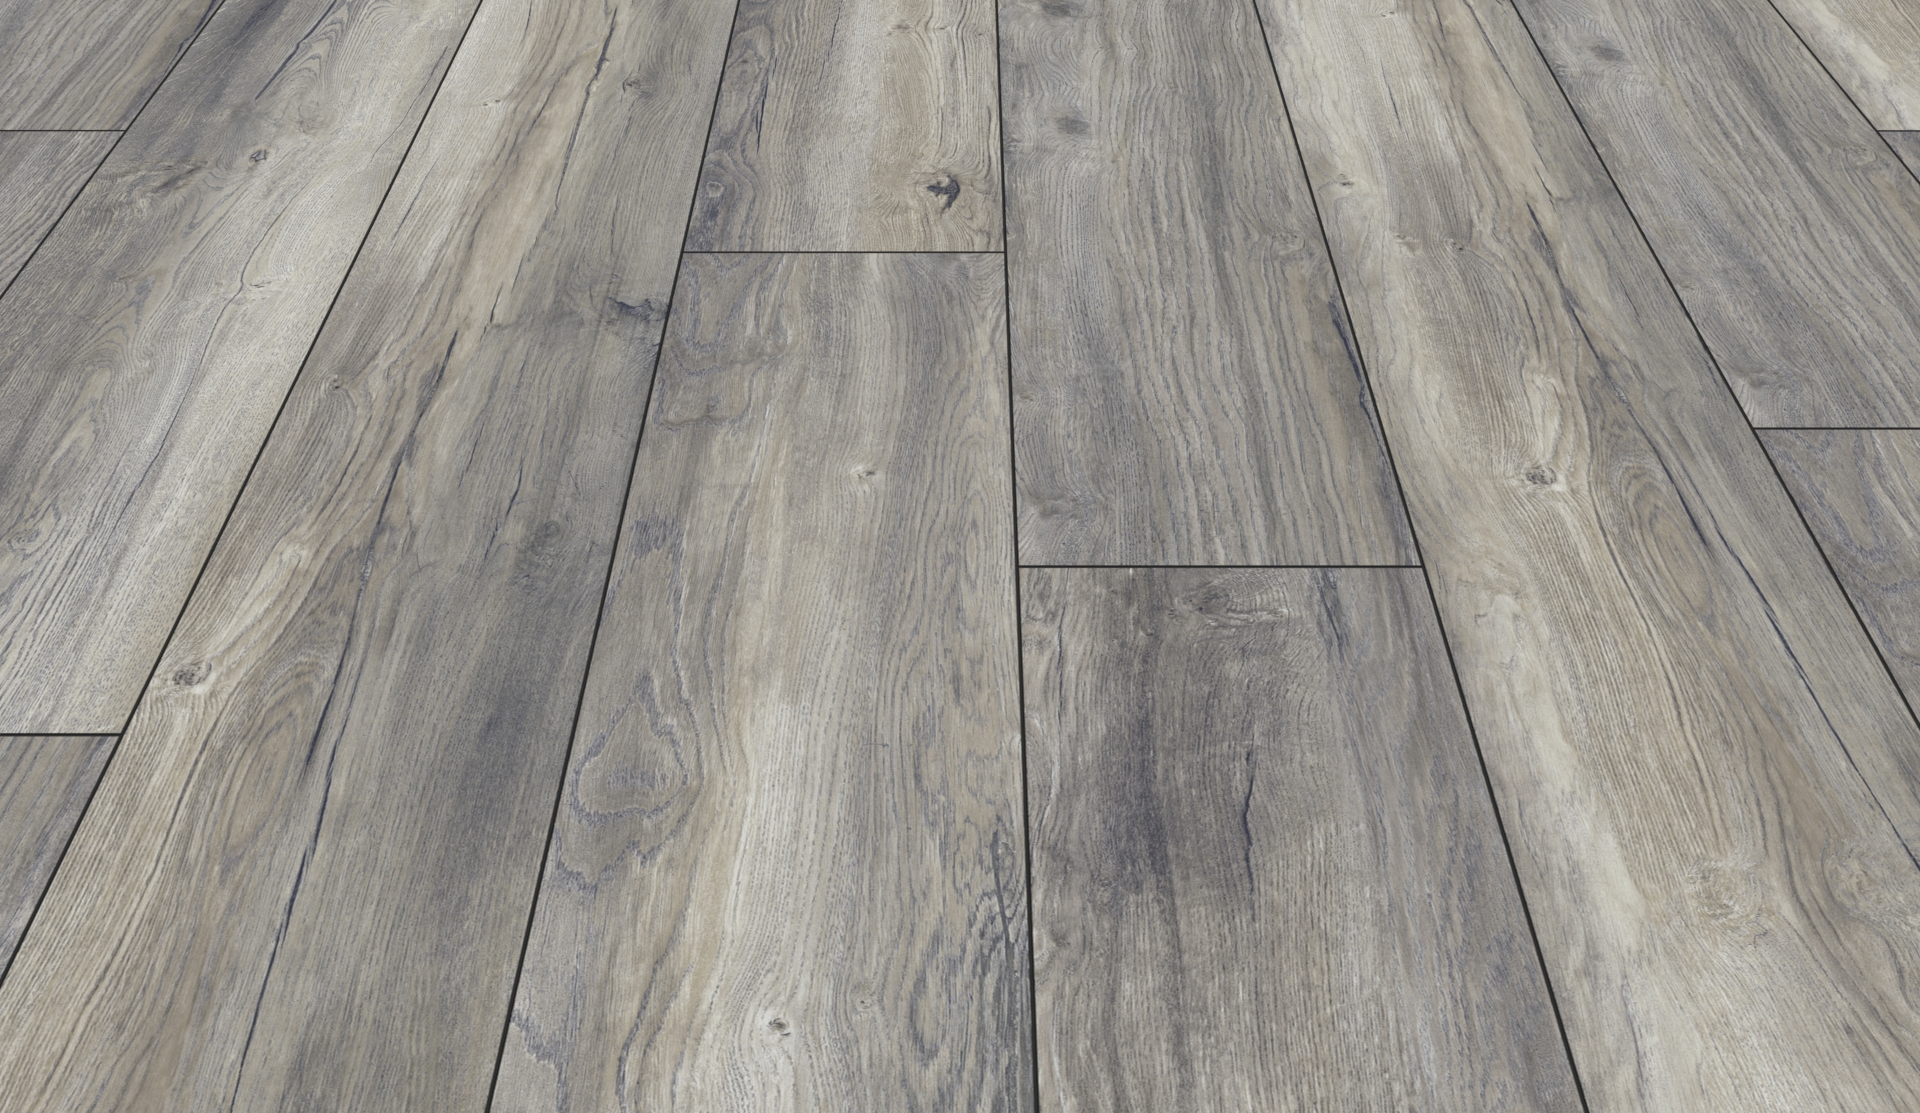 Parchet laminat My Floor Cottage Harbour Oak Grey MV821 poza noua 2021